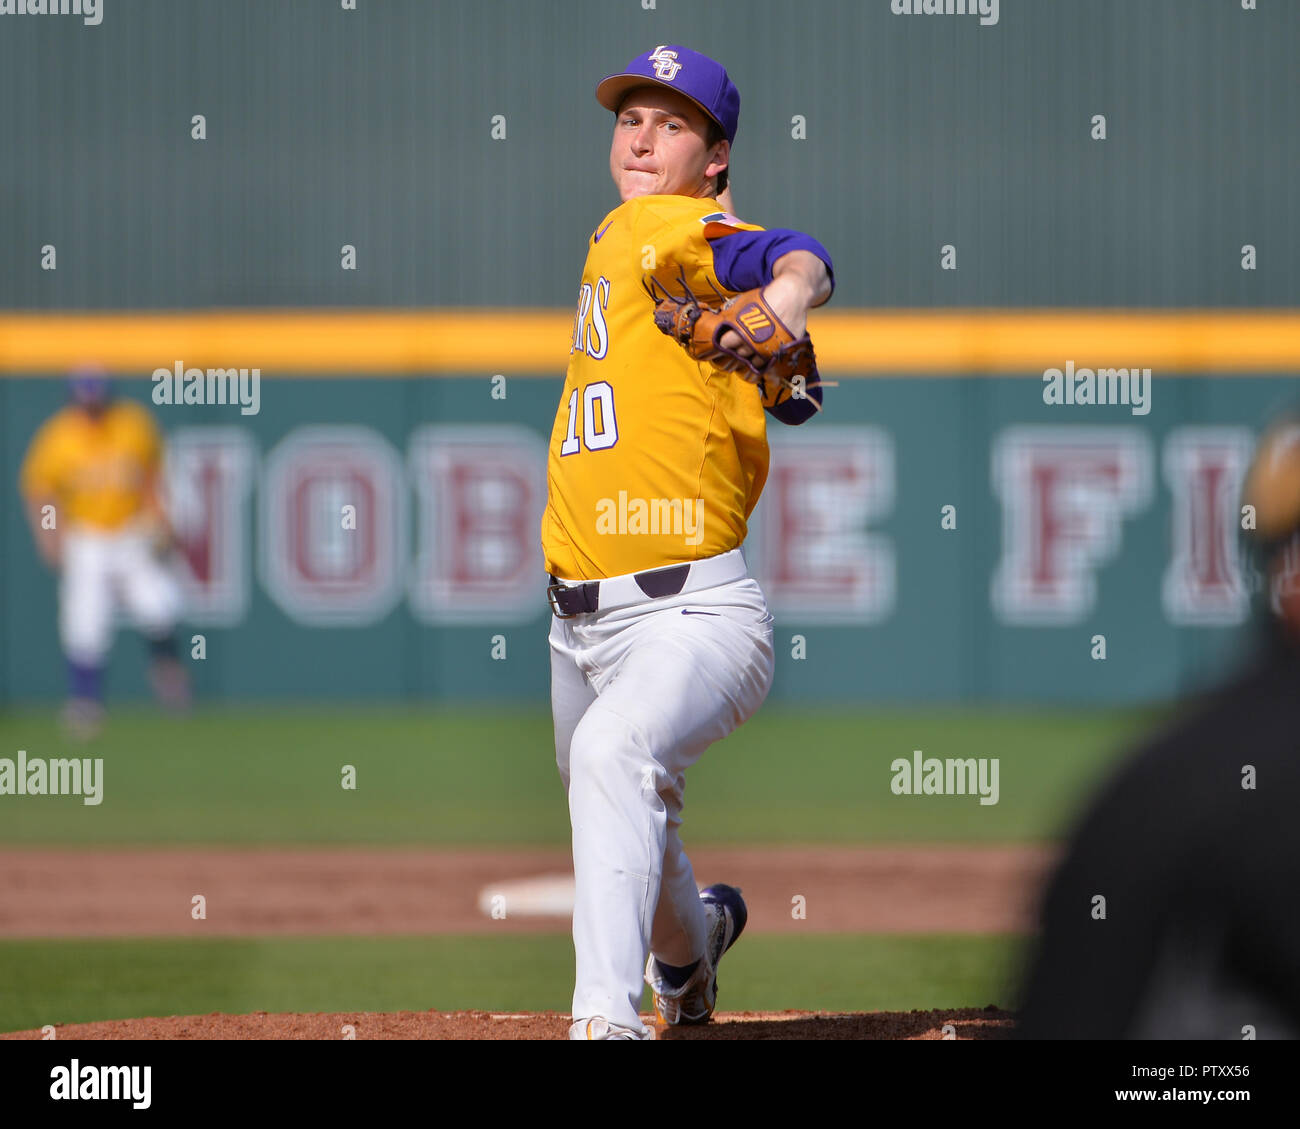 Mississippi, USA.  30th Mar, 2019. LSU pitcher, Eric Walker (10), in action during the NCAA baseball game between the LSU Tigers and the Mississippi State Bulldogs at Dudy Noble Field in Starkville, MS. LSU defeated Mississippi State, 11-2. Kevin Langley/Sports South Media/CSM/Alamy Live News Stock Photo